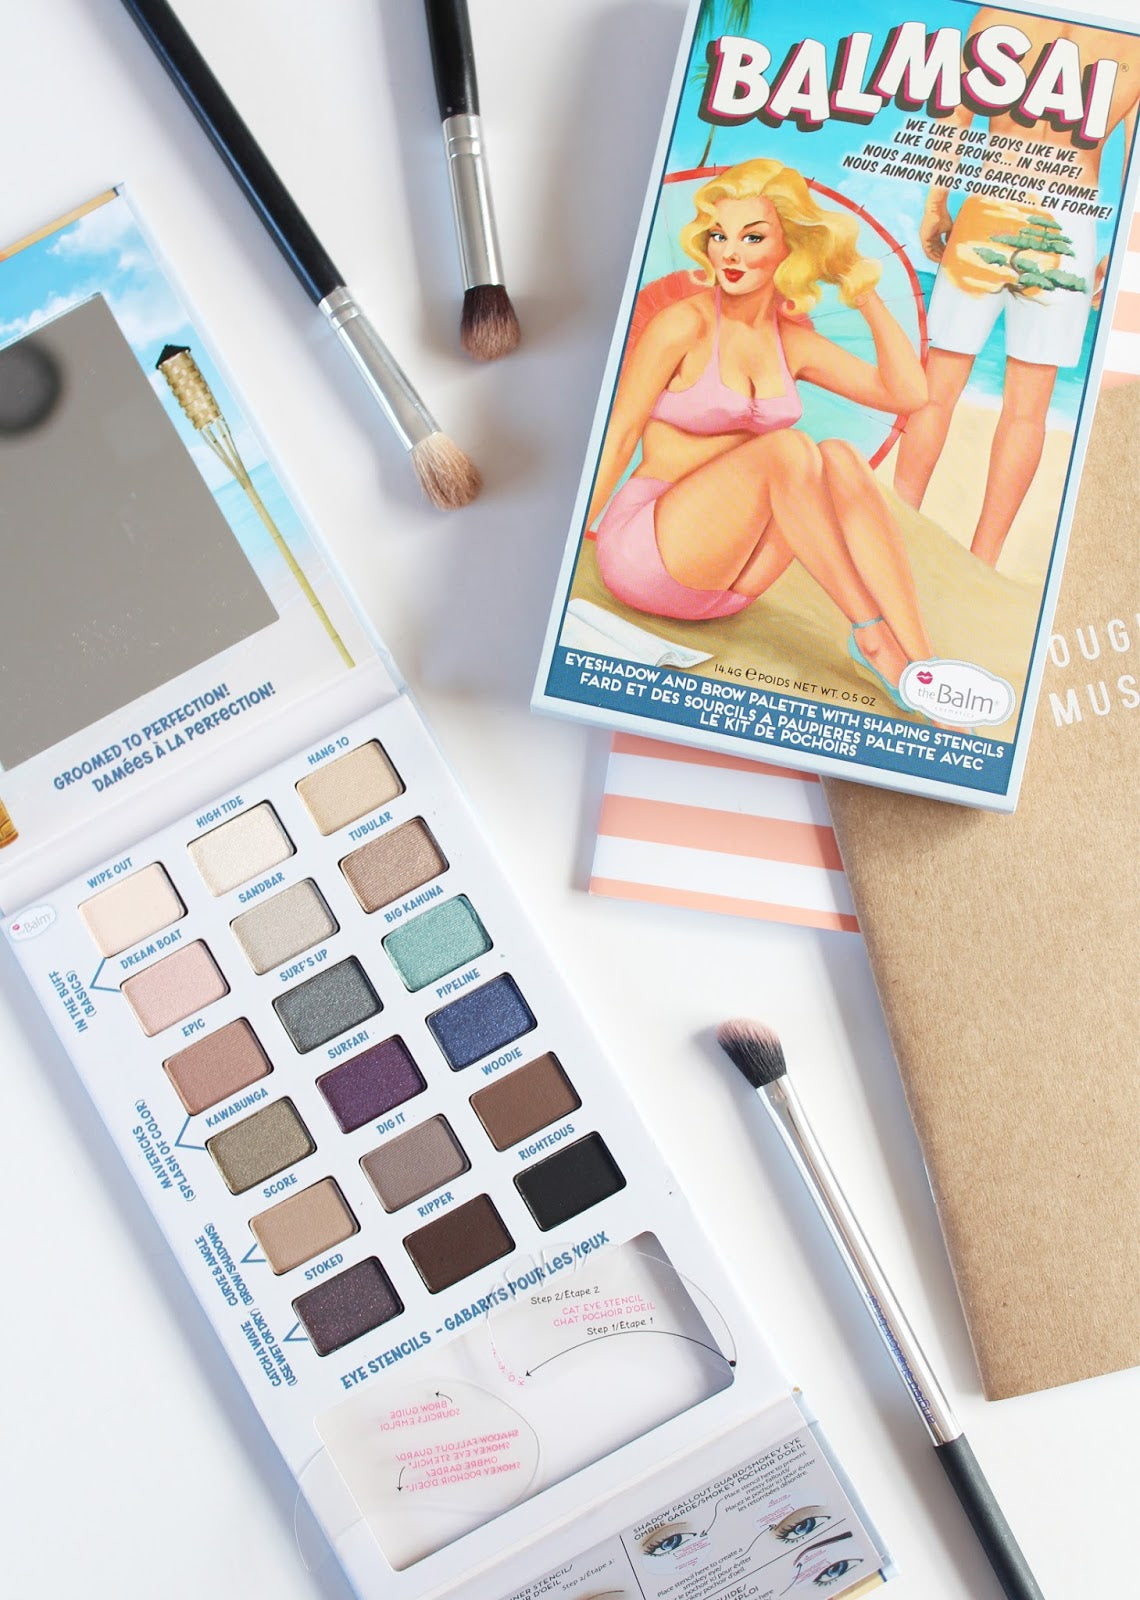 The Balm Balmsai Eyeshadow Palette